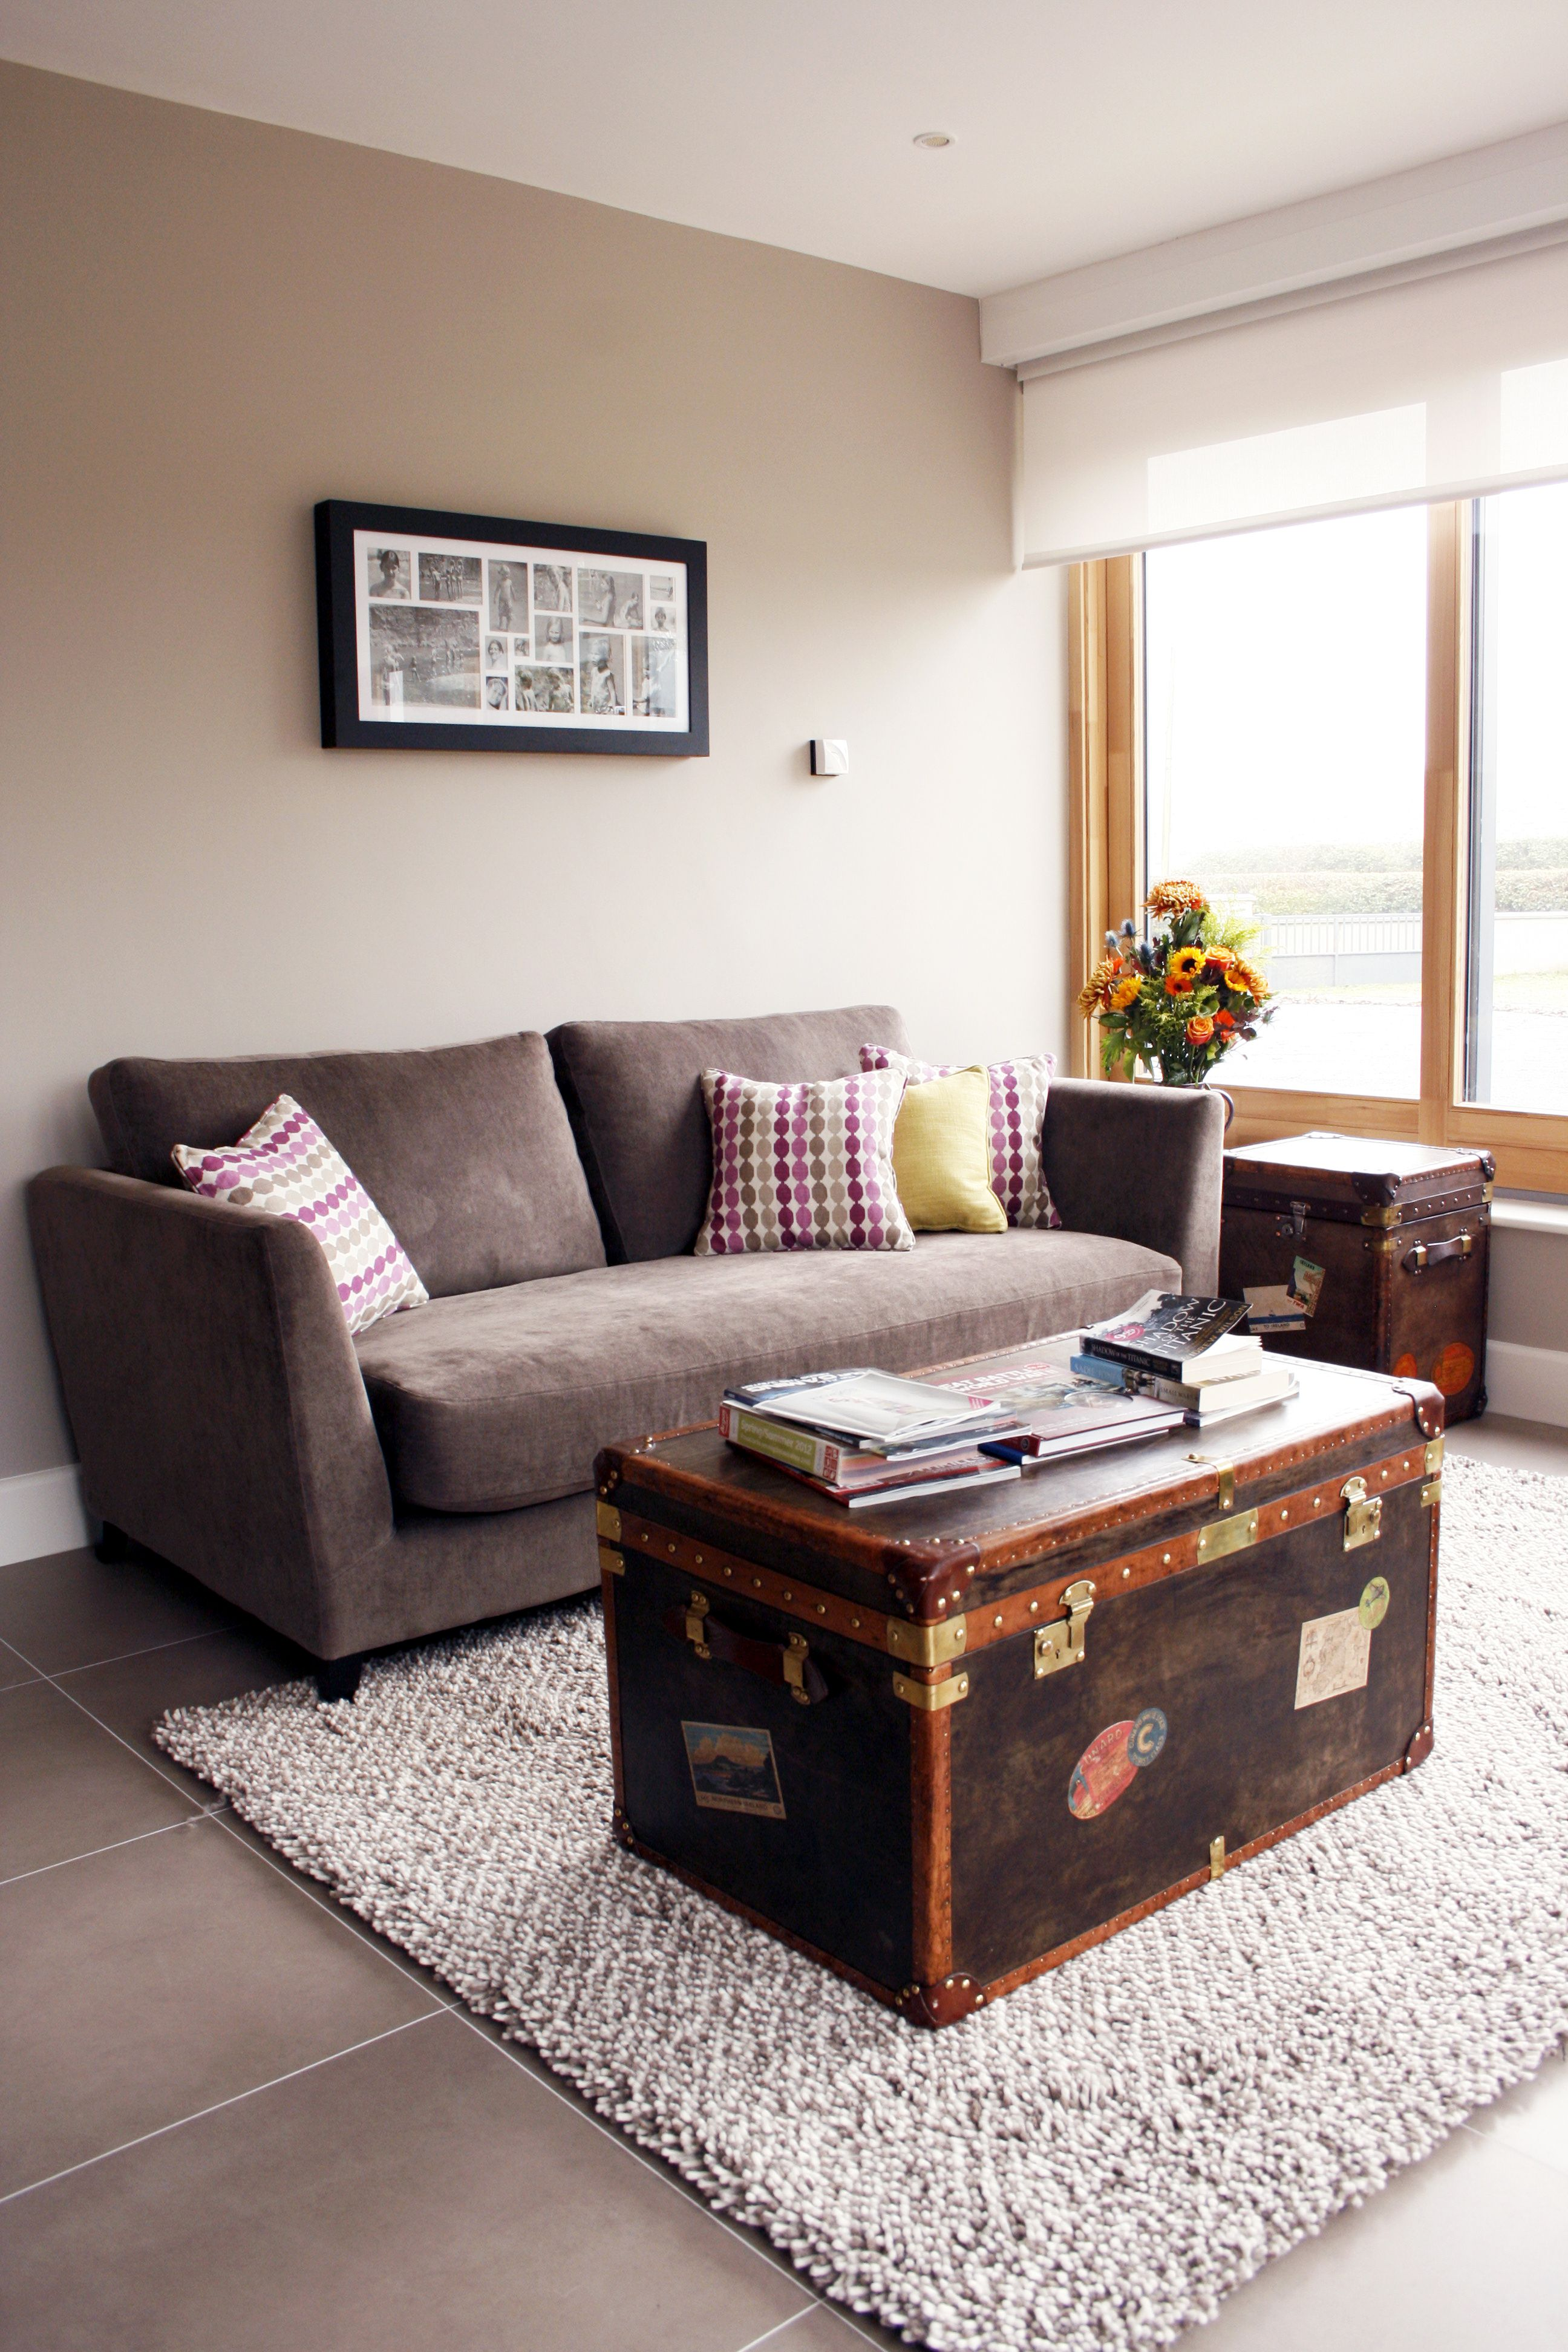 5 bedroom house interior living room   bedroom house renovation kildare by think